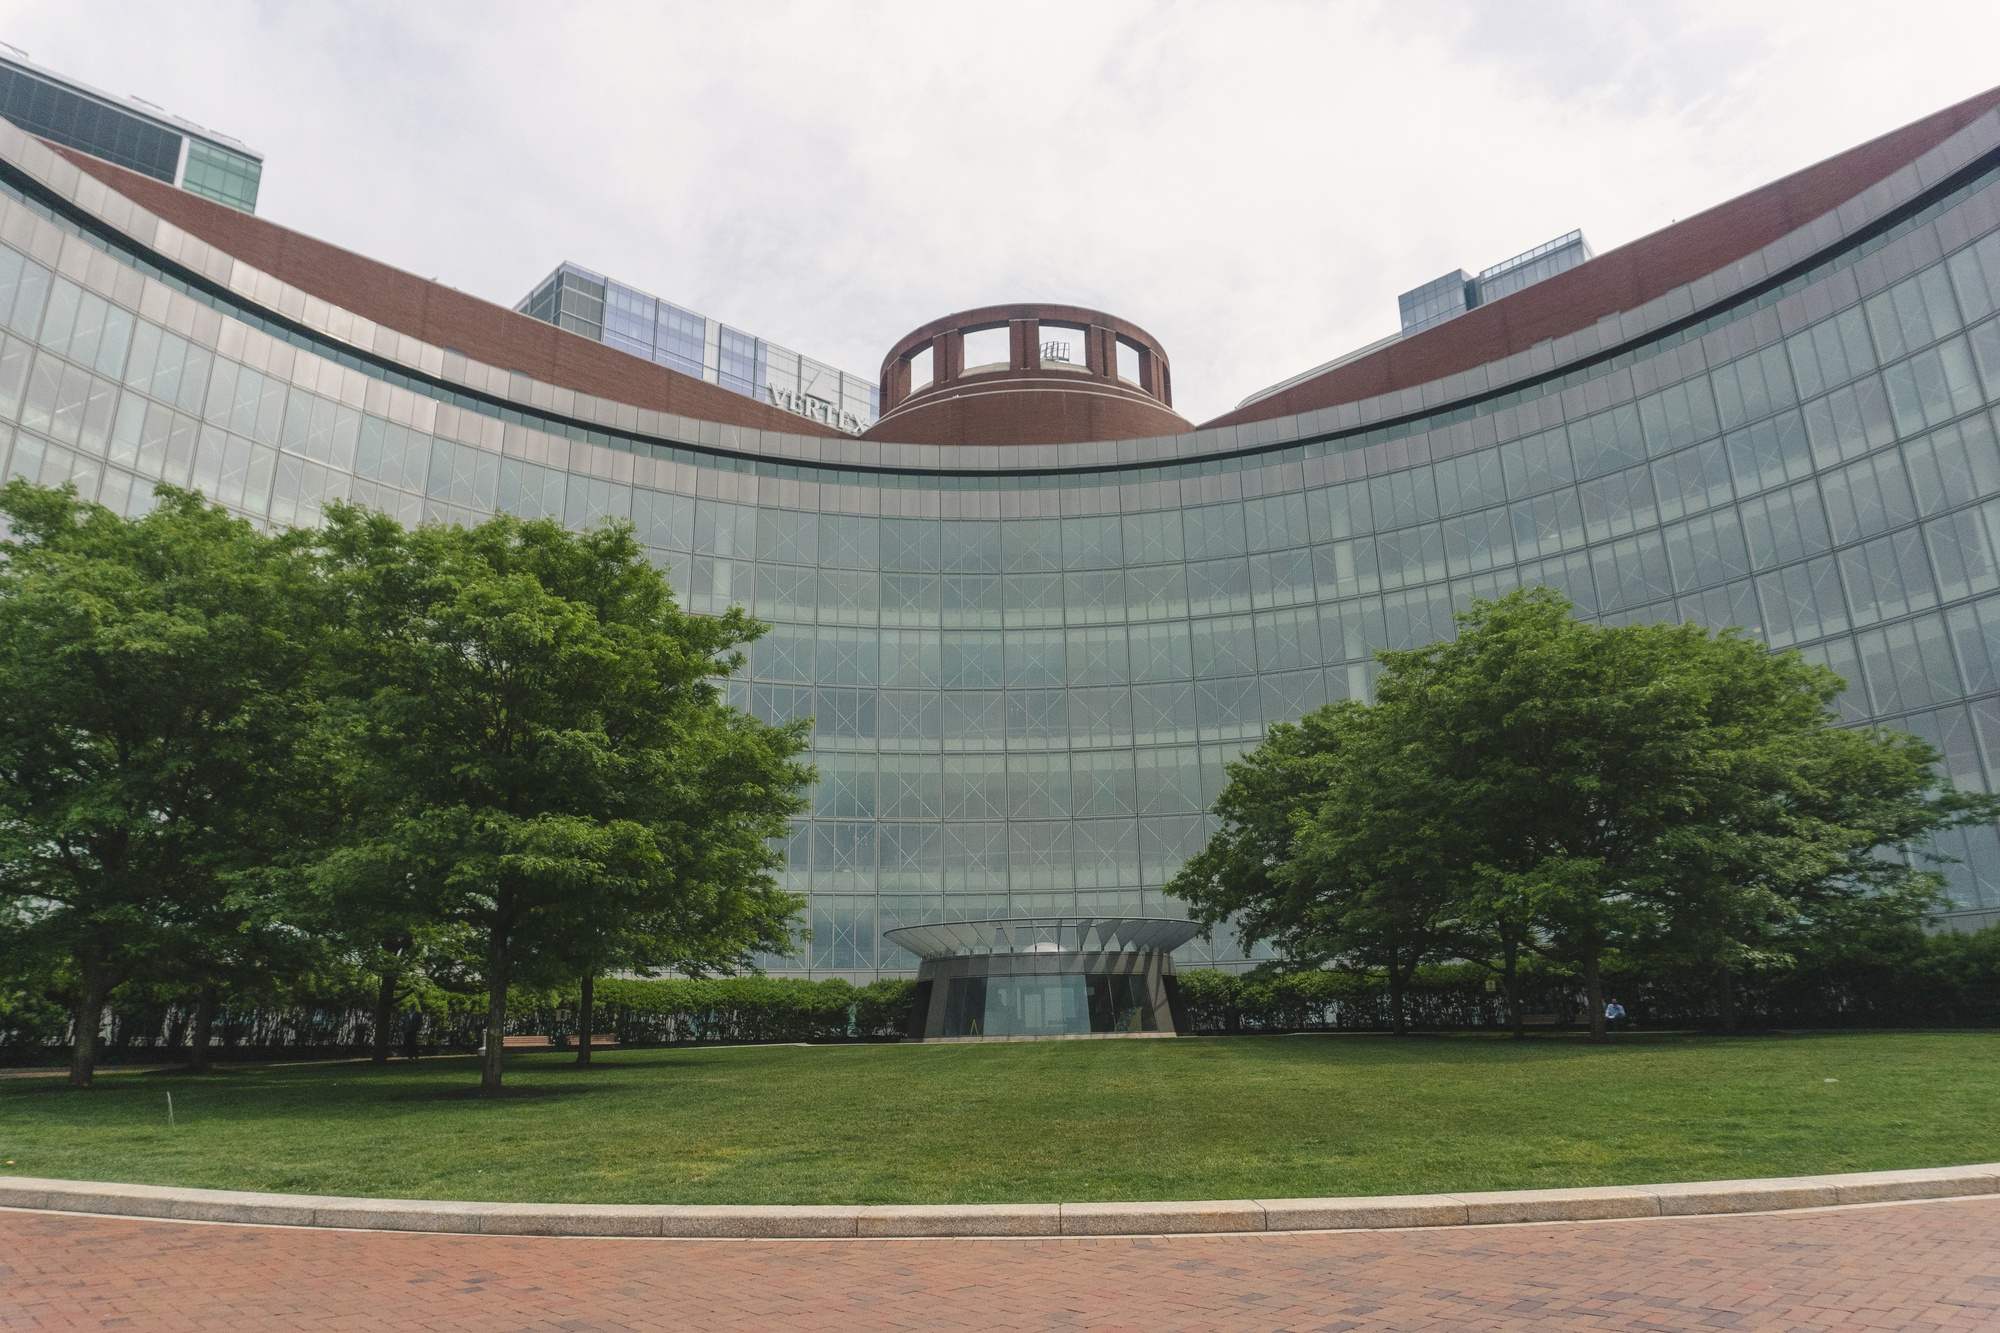 The lawsuit alleging Harvard discriminates against Asian-American applicants went to trial in the John Joseph Moakley United States Courthouse Oct. 15.